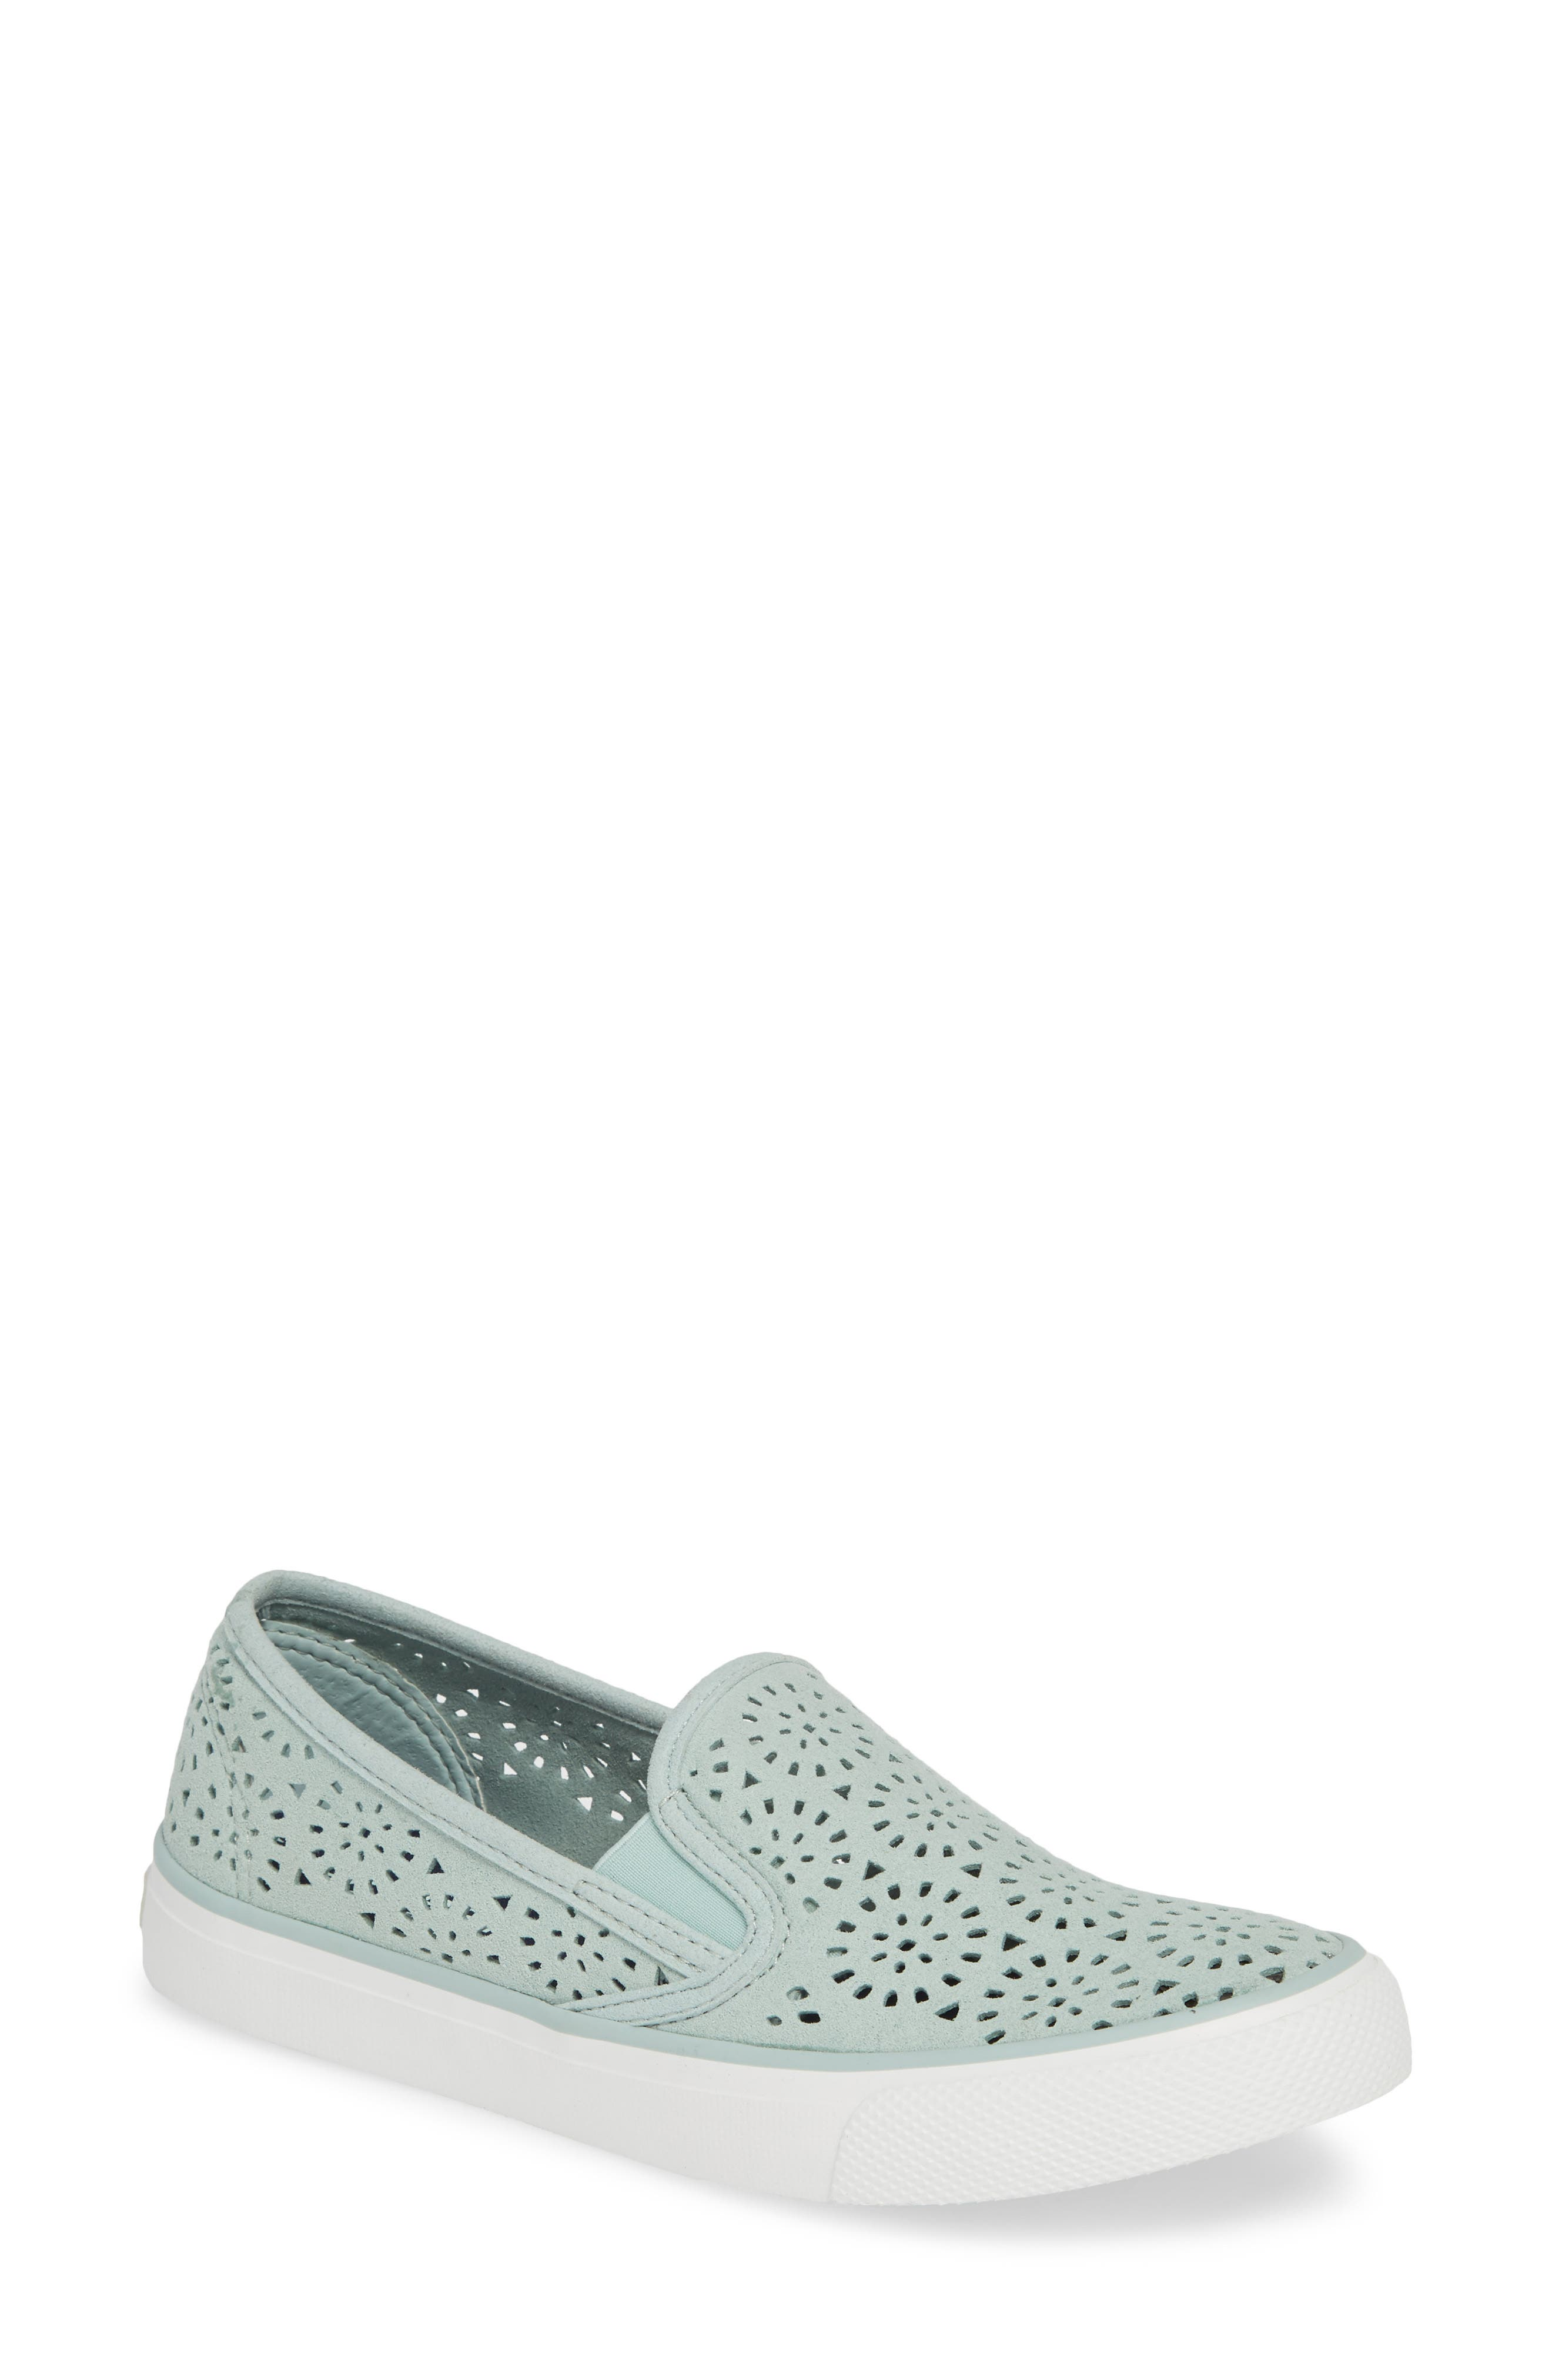 Seaside Nautical Perforated Slip-On Sneaker,                         Main,                         color, MINT NUBUCK LEATHER